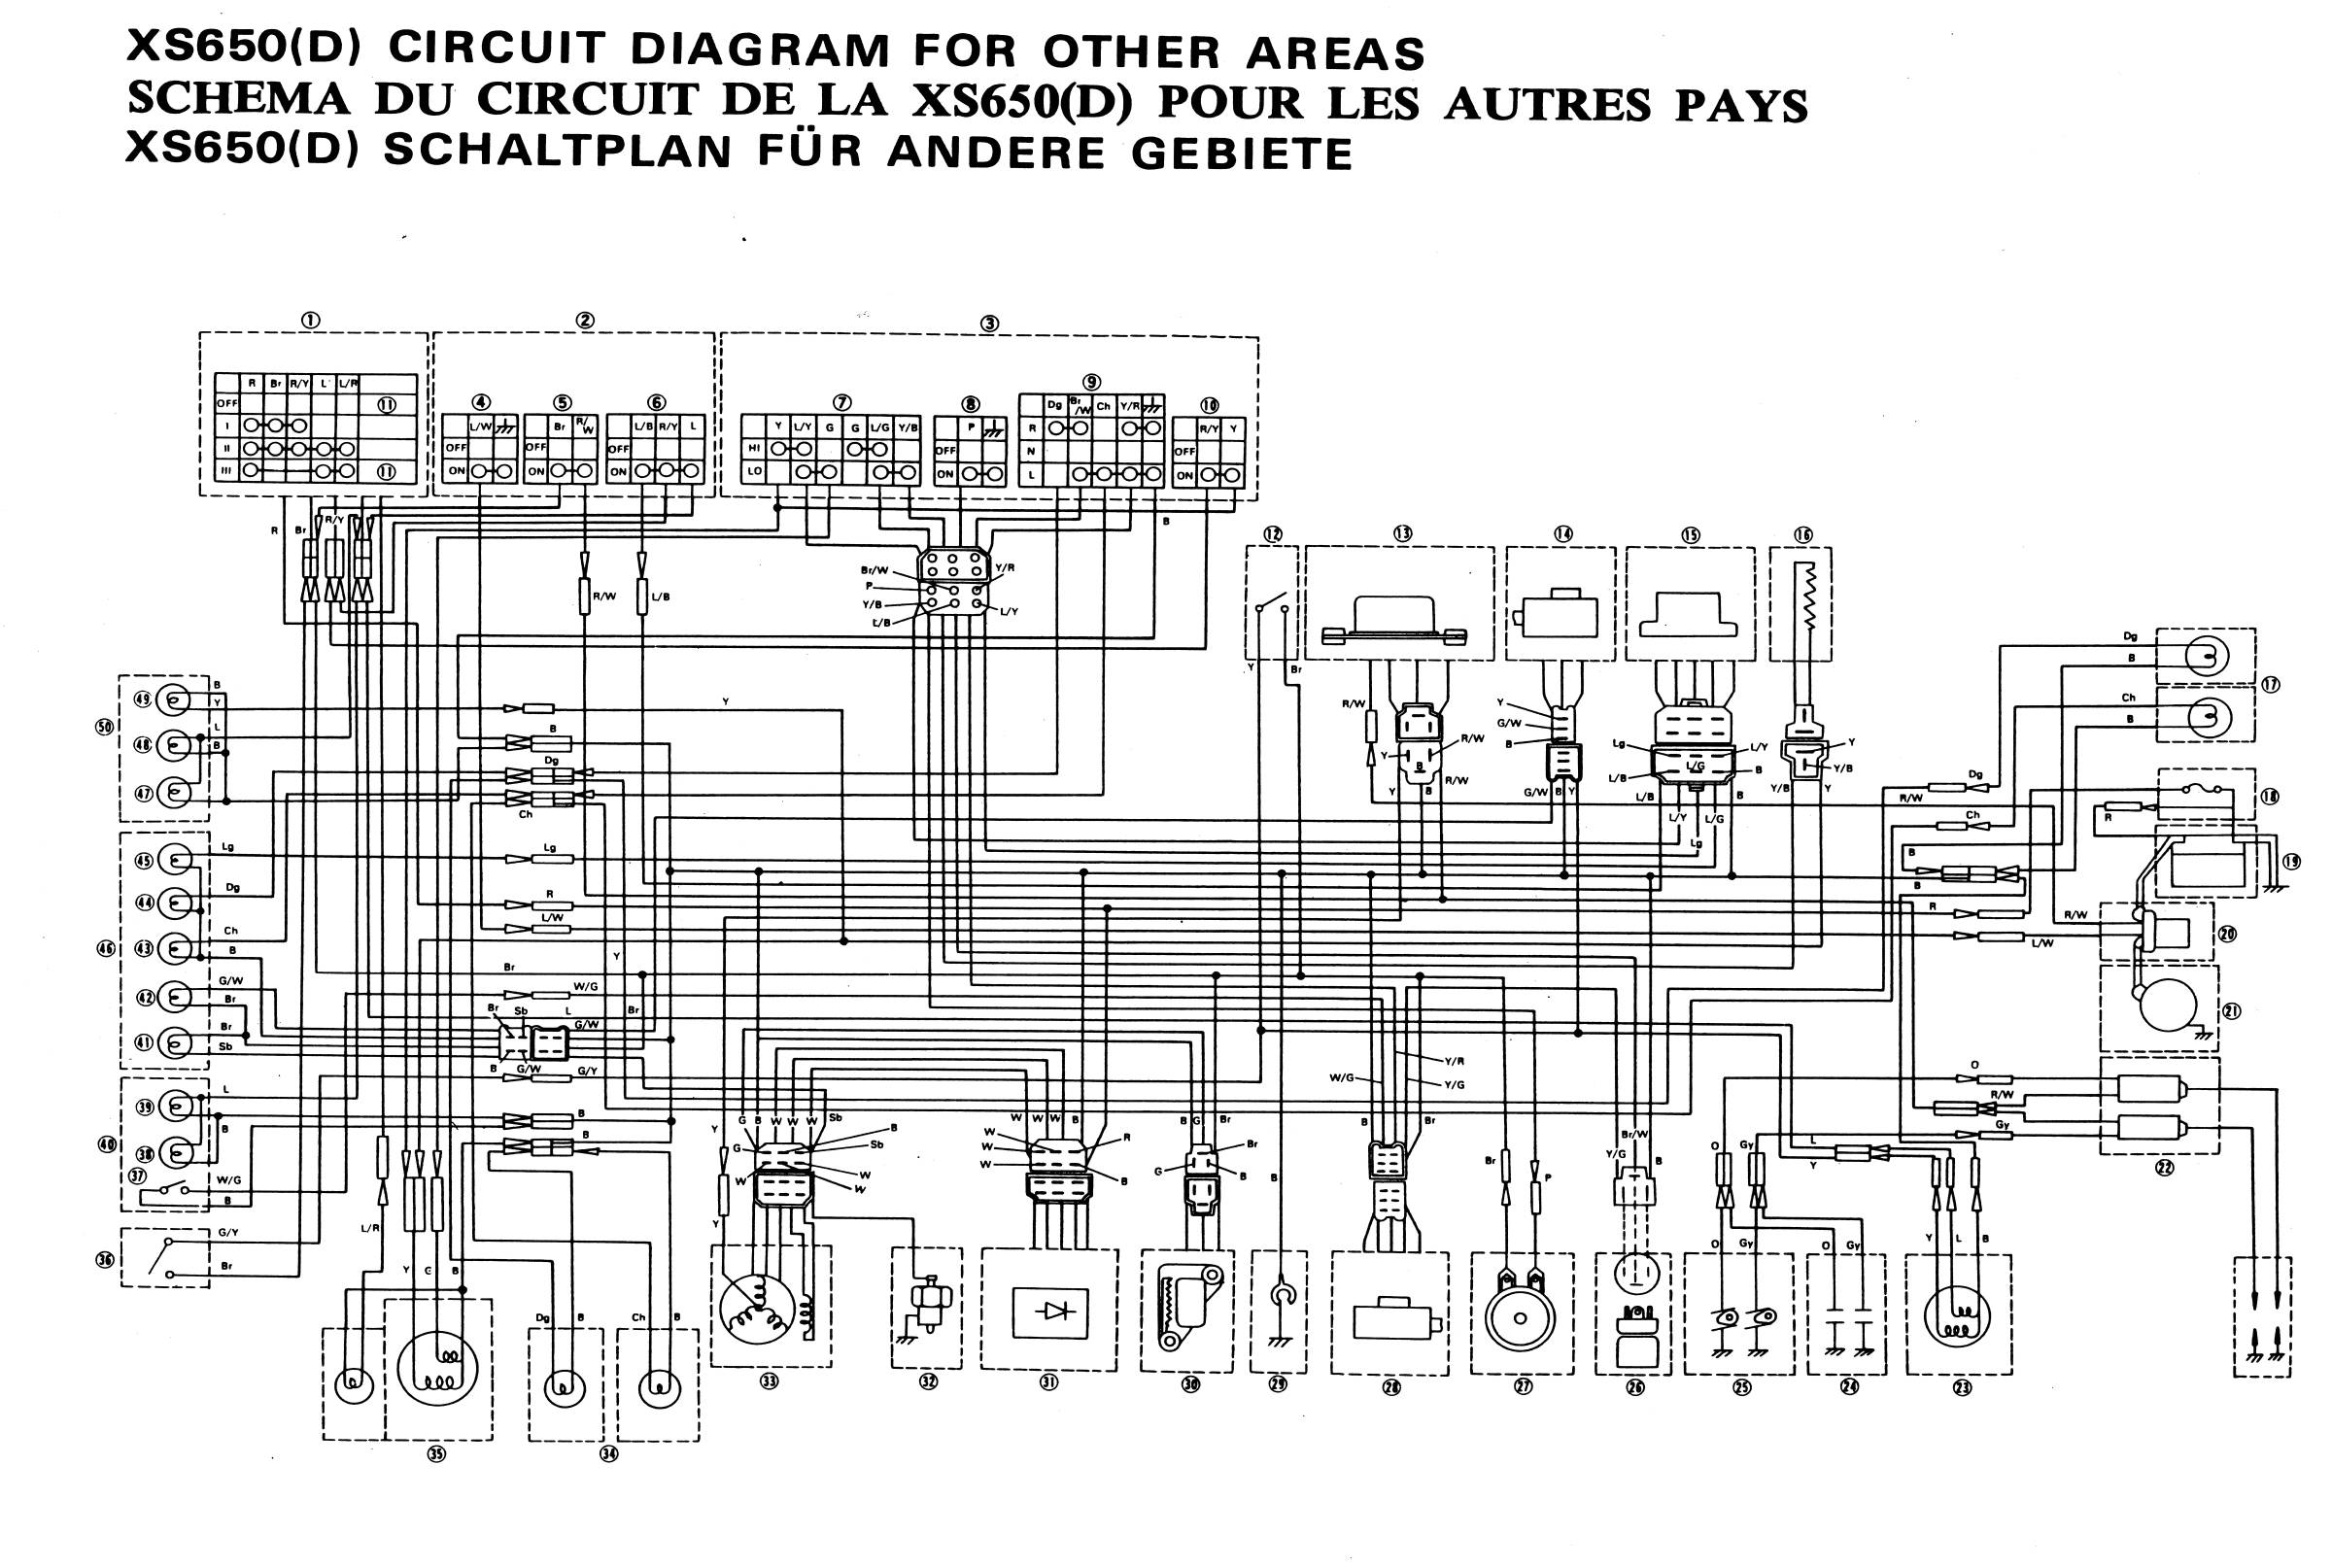 dacor erd range diagram schematic all about repair and wiring dacor erd range diagram schematic banshee ignition wiring diagram 2005 engine wiring harness push elec